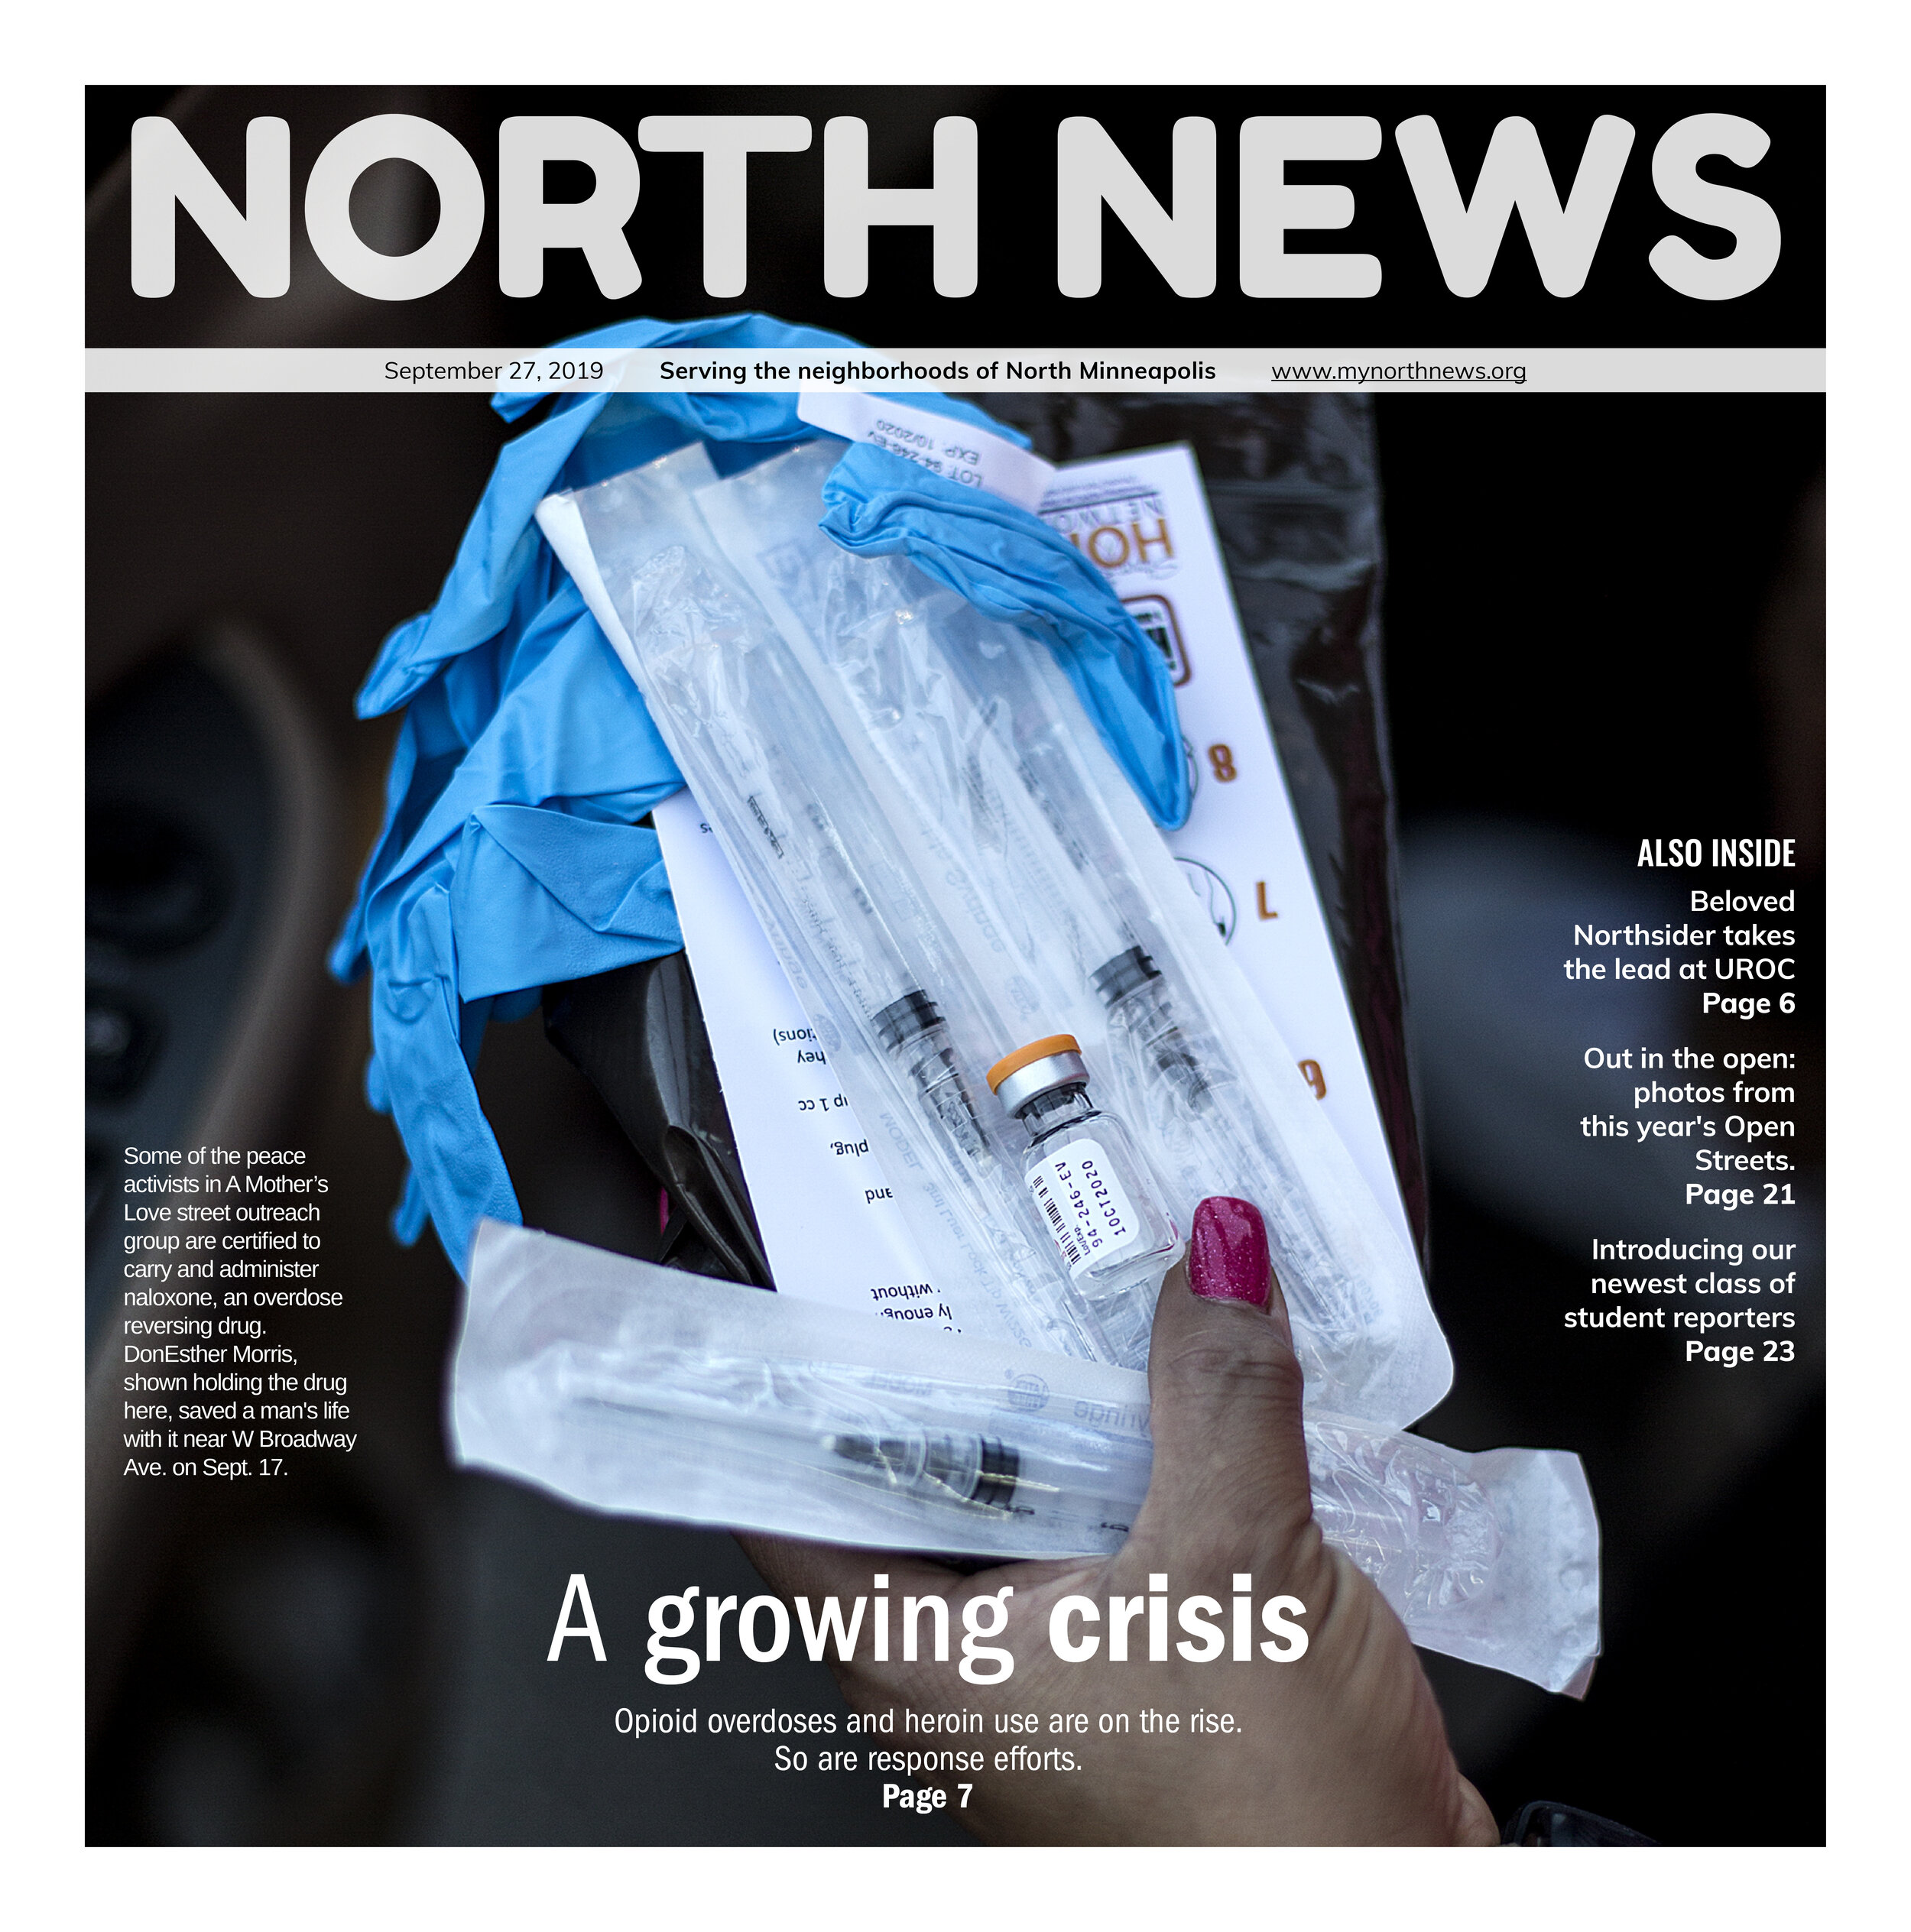 190926_North News_Final_For Web_Cover.jpg